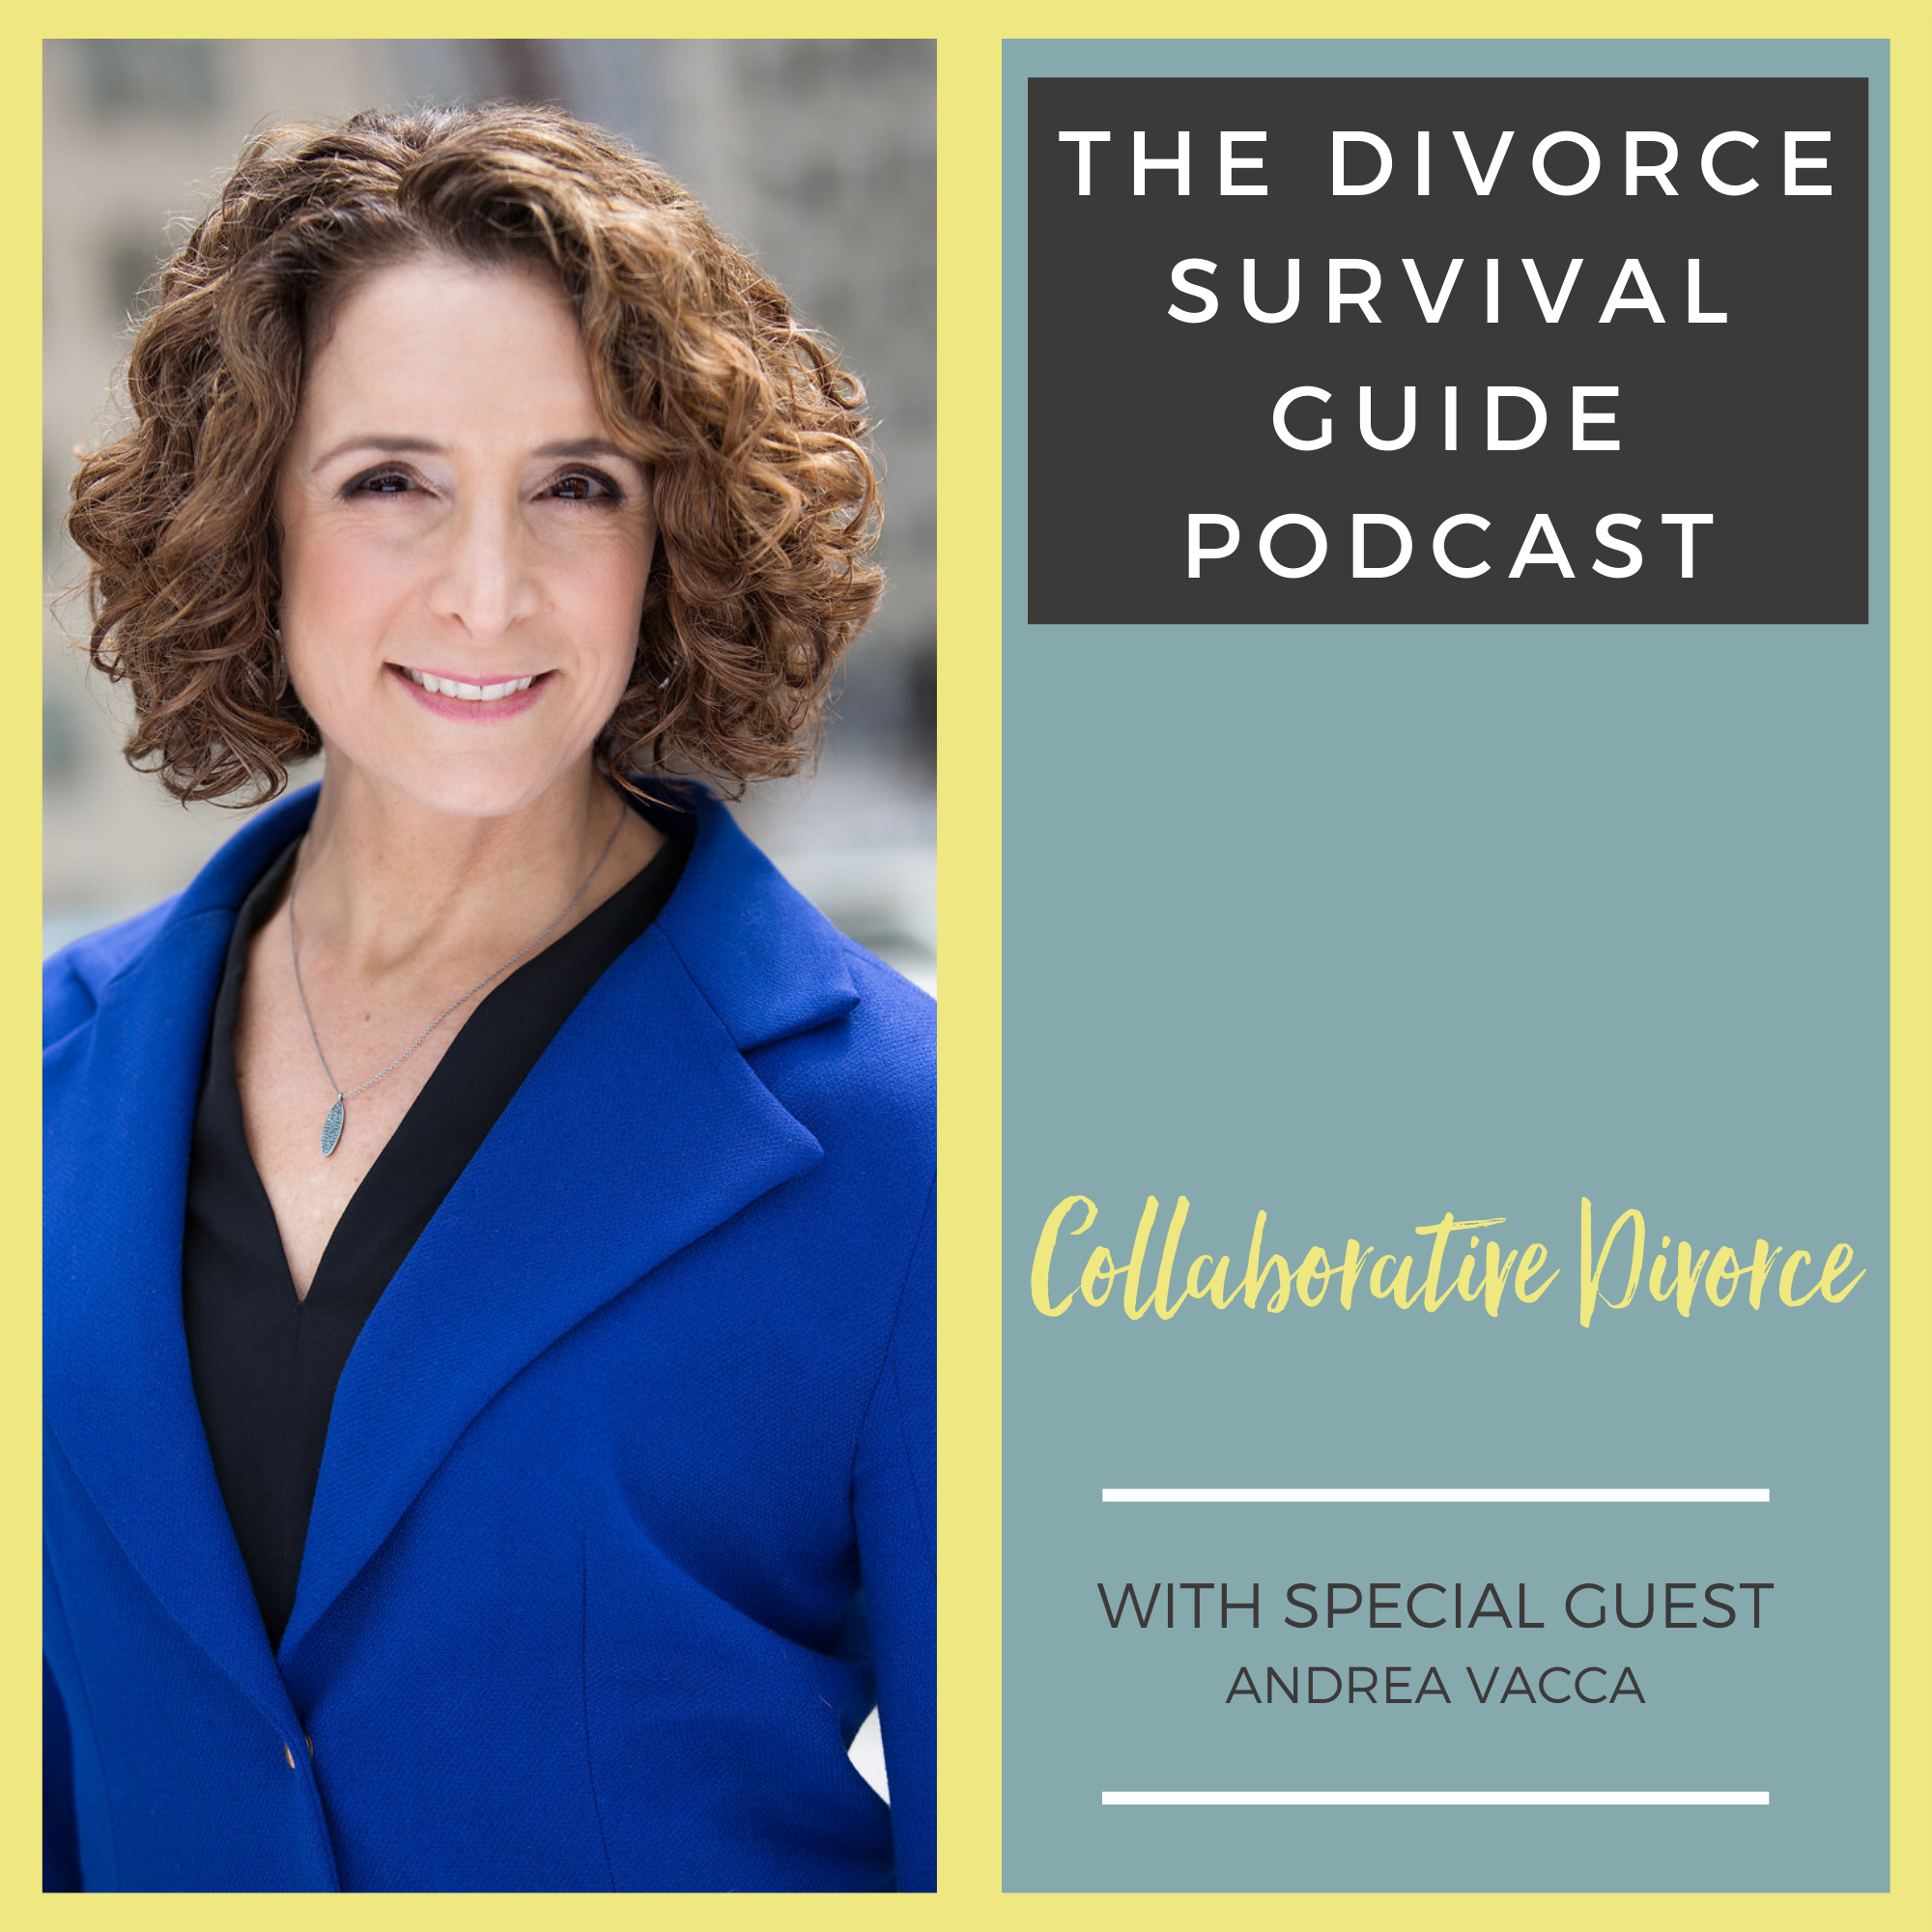 The Divorce Survival Guide Podcast - Collaborative Divorce with Andrea Vacca